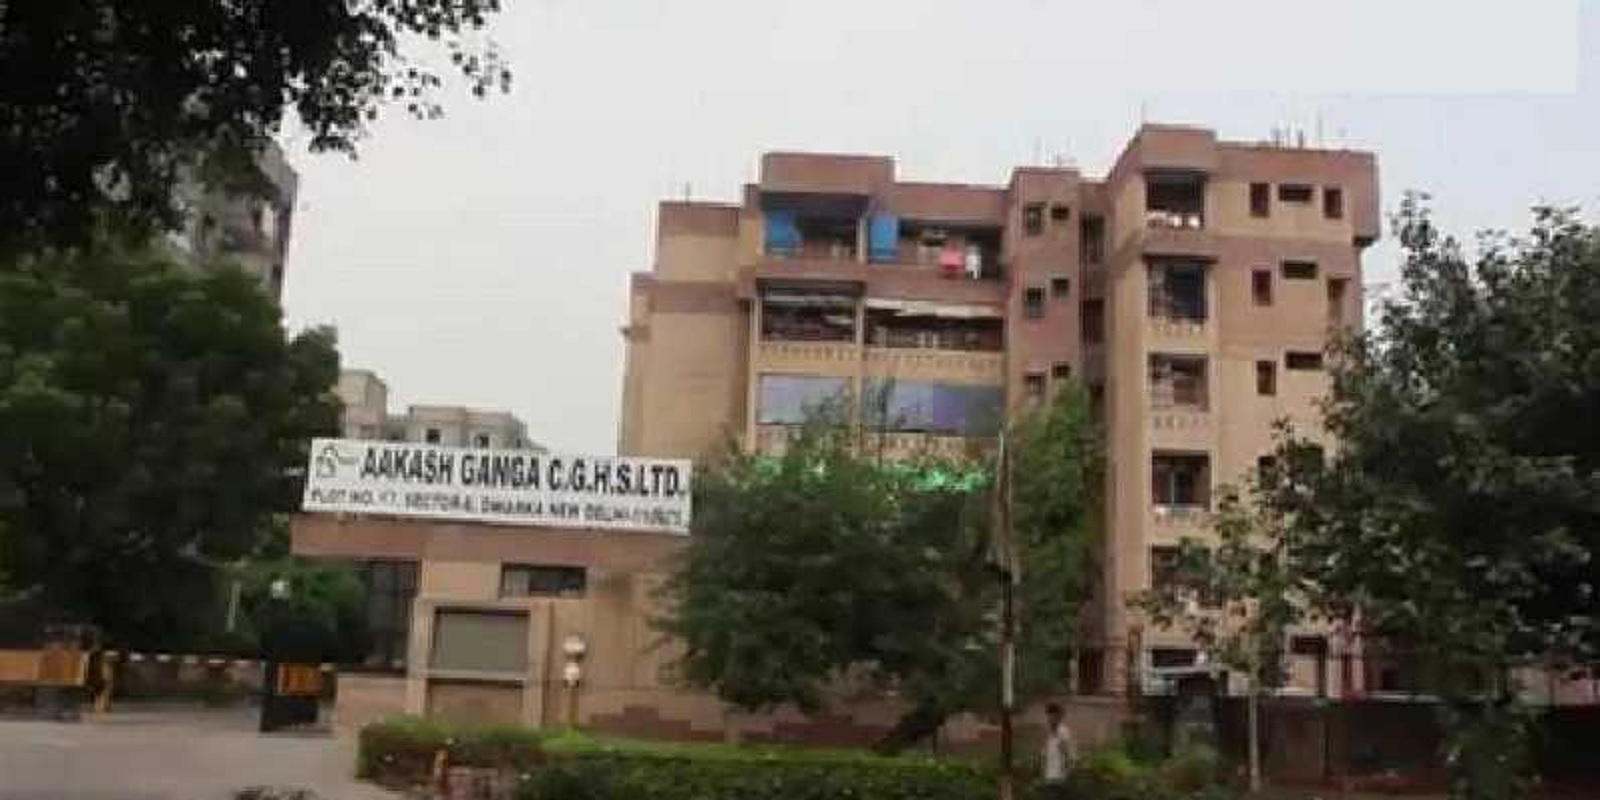 aakash ganga cghs project project large image1